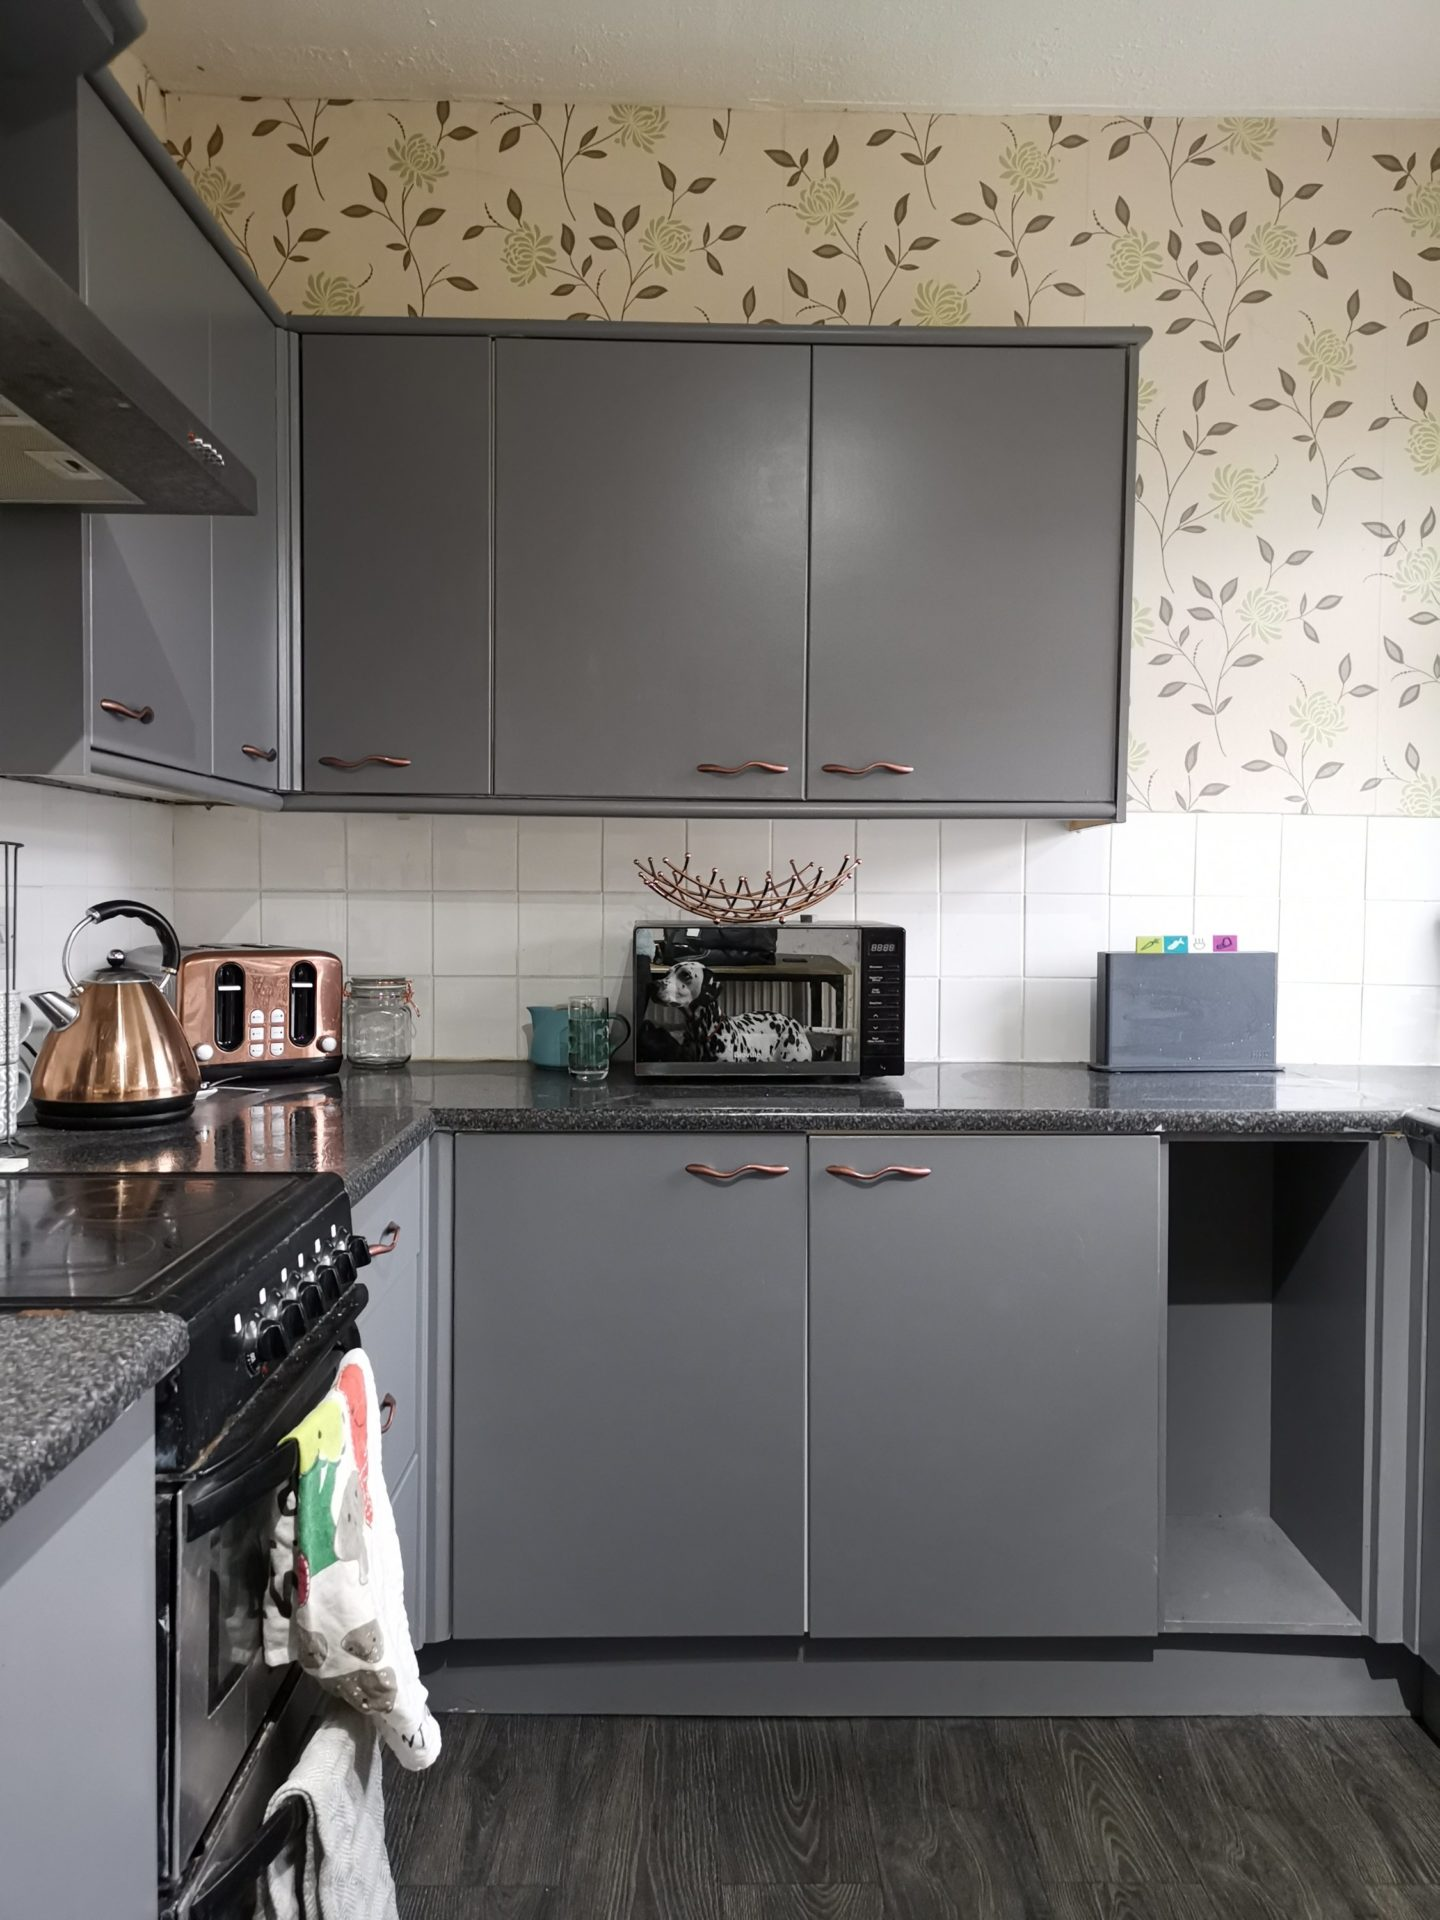 Kitchen Renovation under £250 - After Photo - Grey and Rose Gold